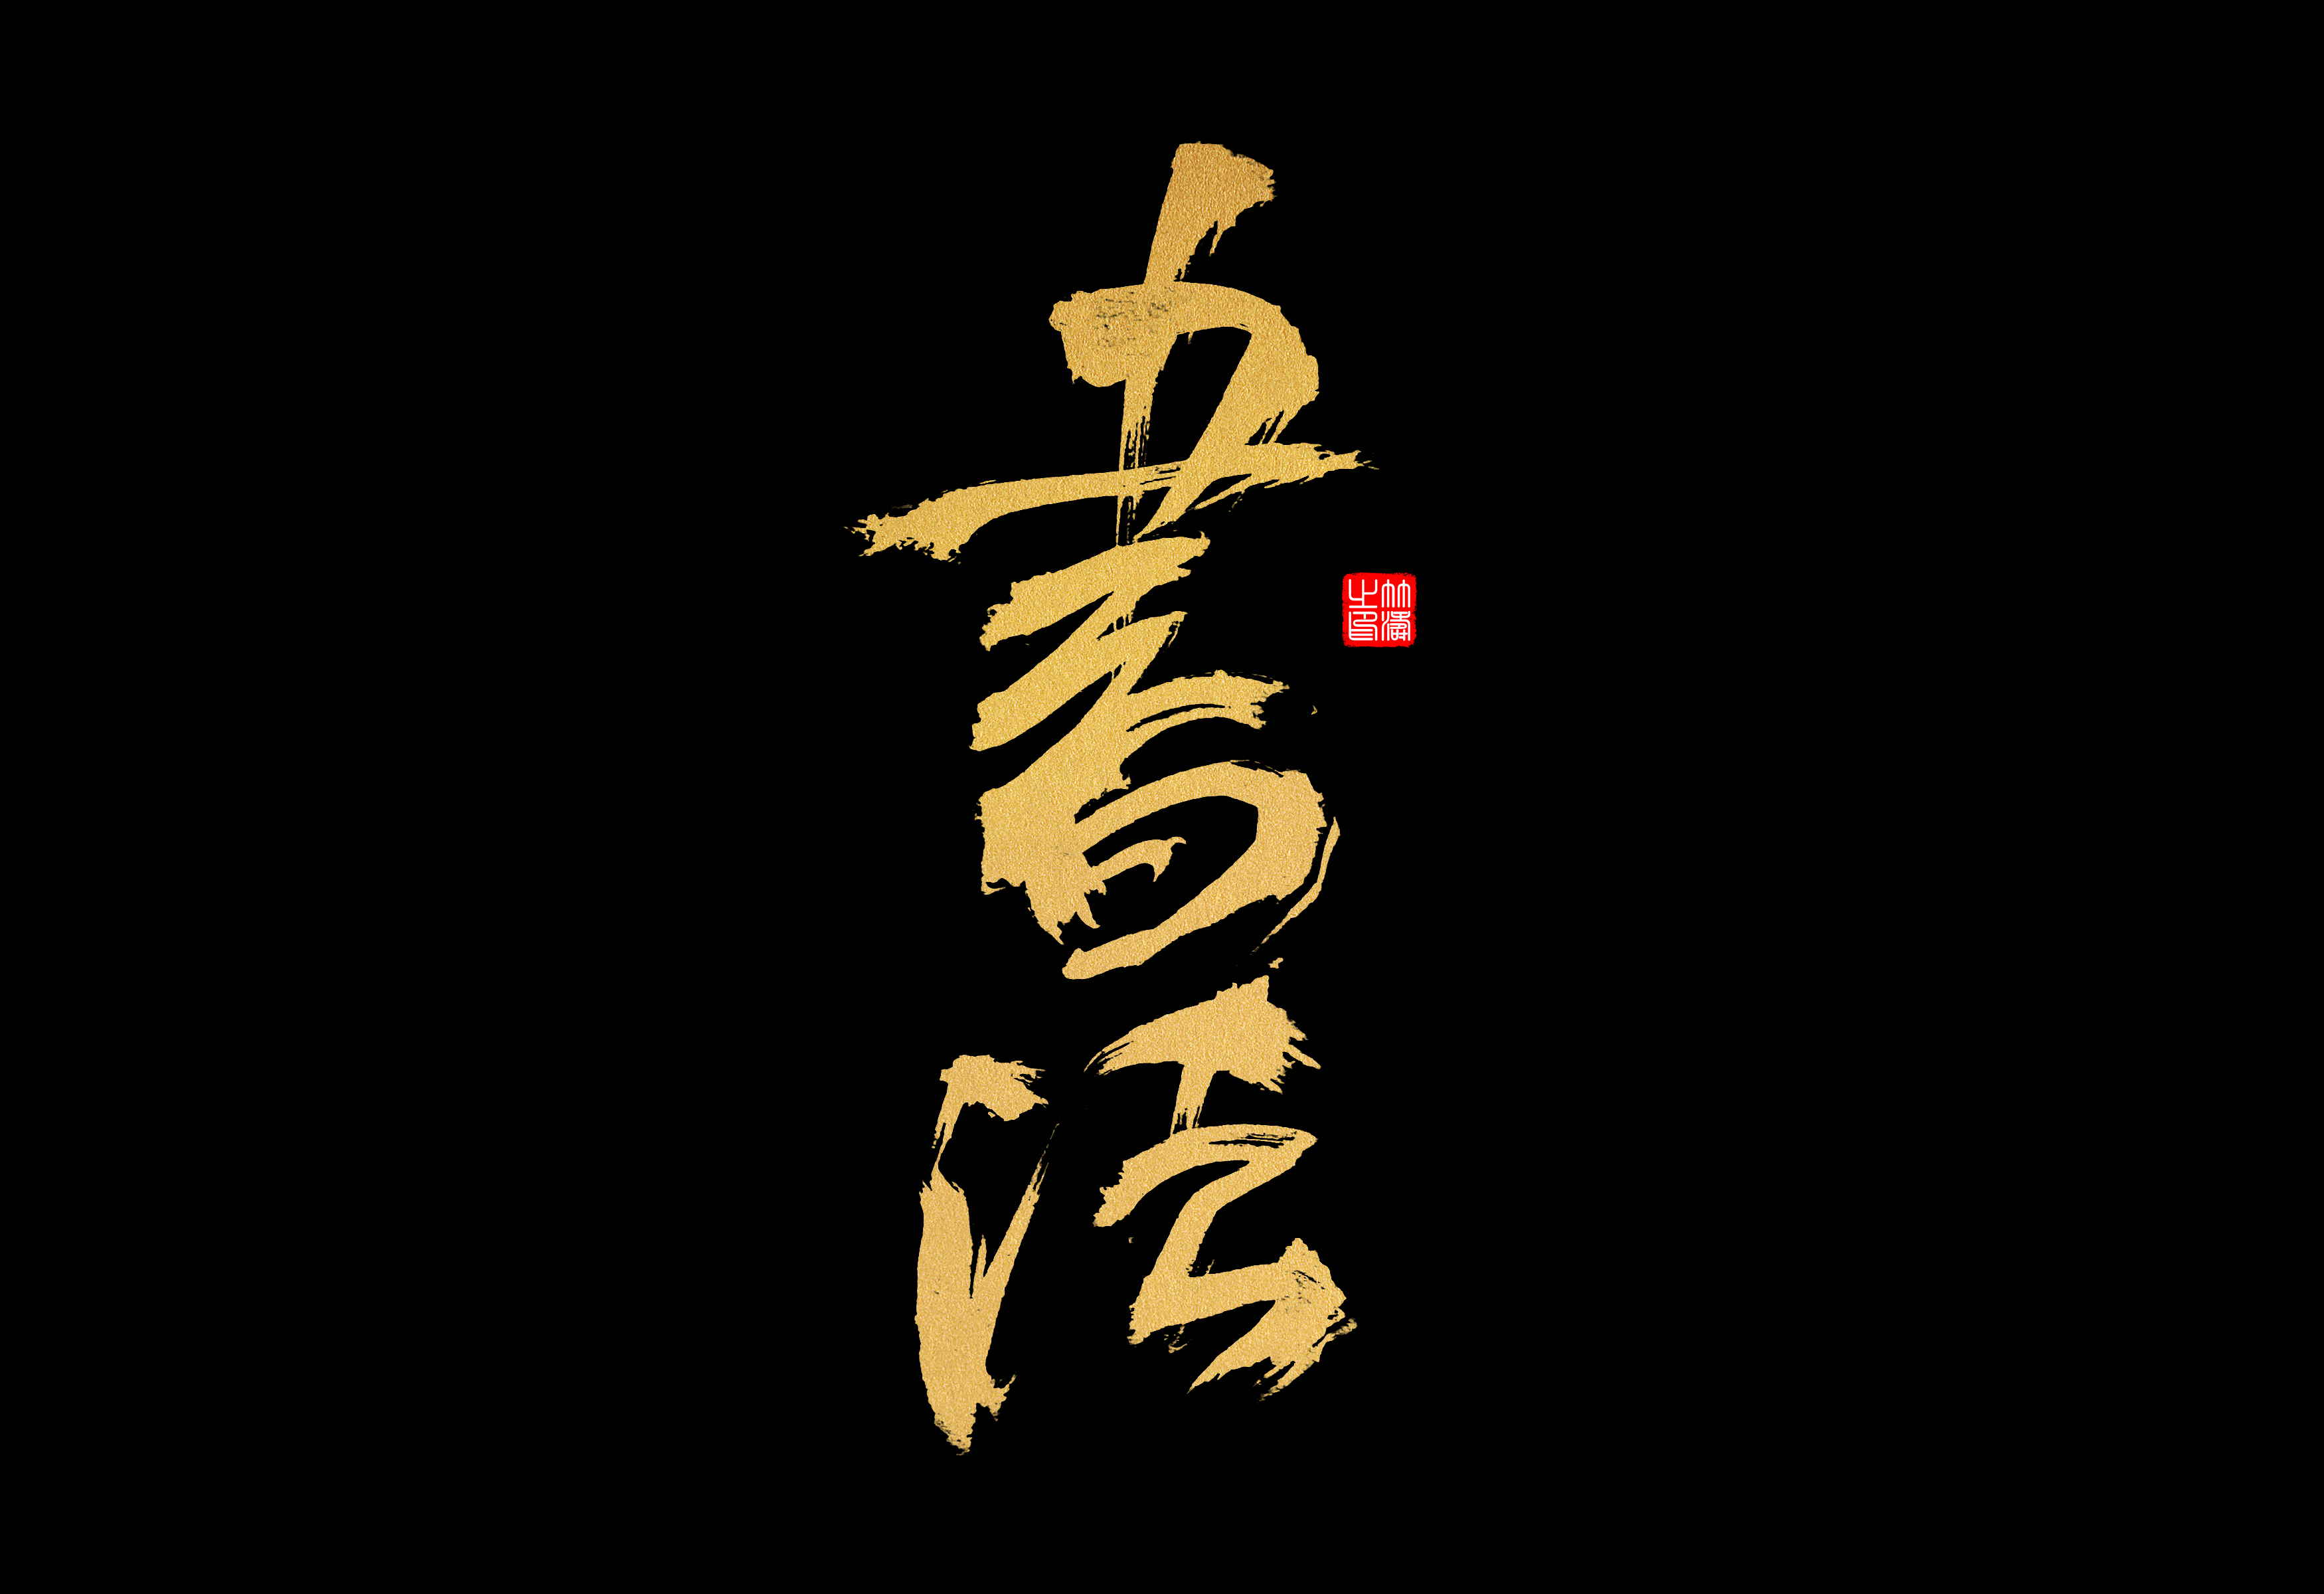 23P Collection of the latest Chinese font design schemes in 2021 #.451